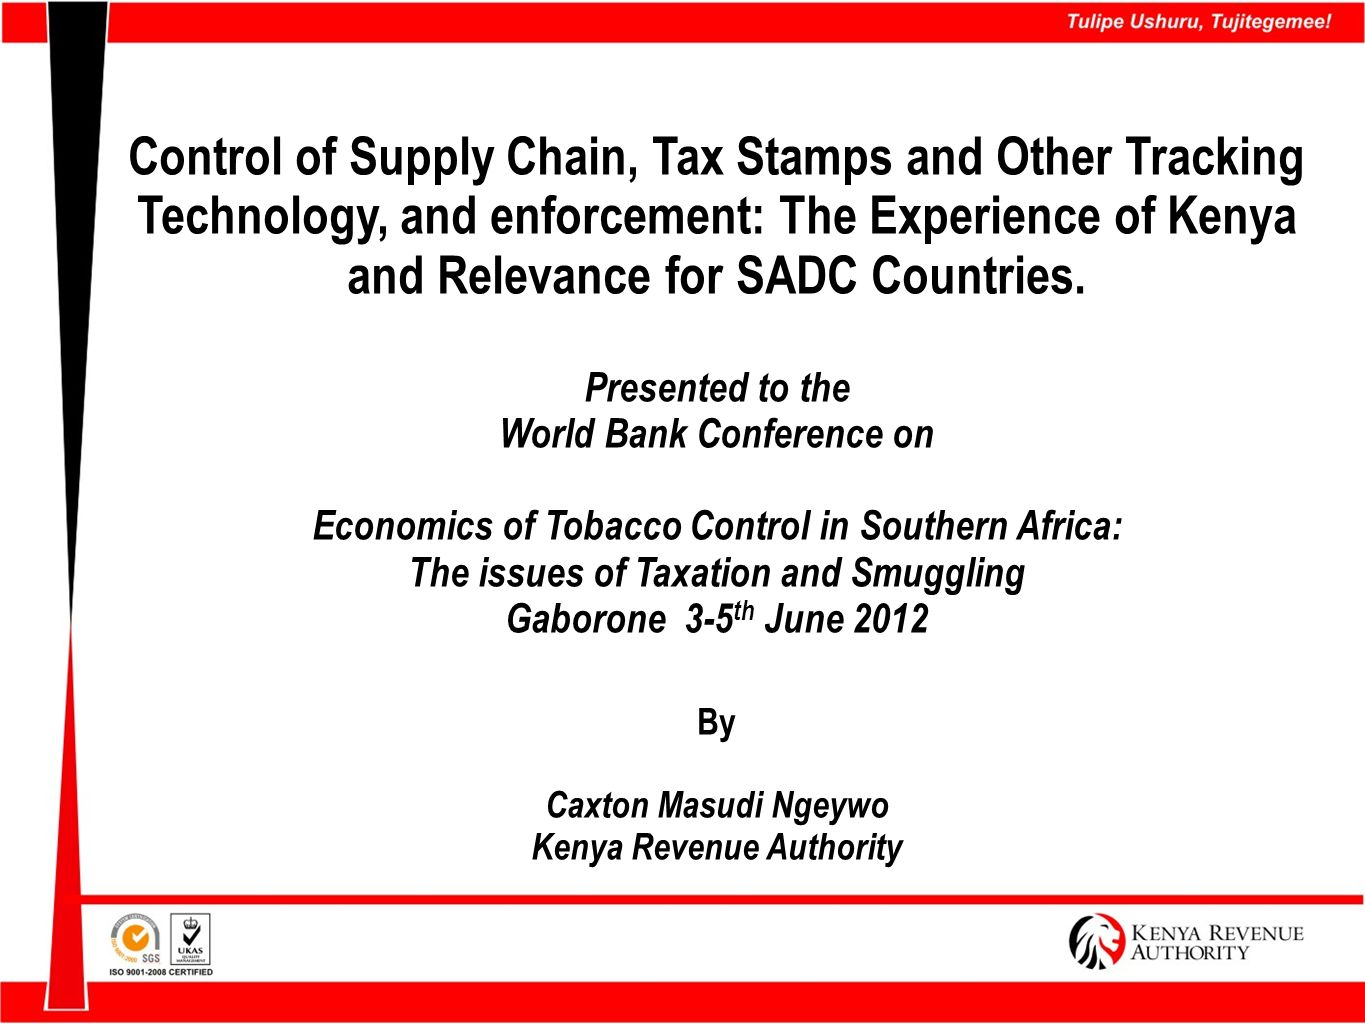 Control of Supply Chain, Tax Stamps and Other Tracking Technology, and enforcement: The Experience of Kenya and Relevance for SADC Countries.